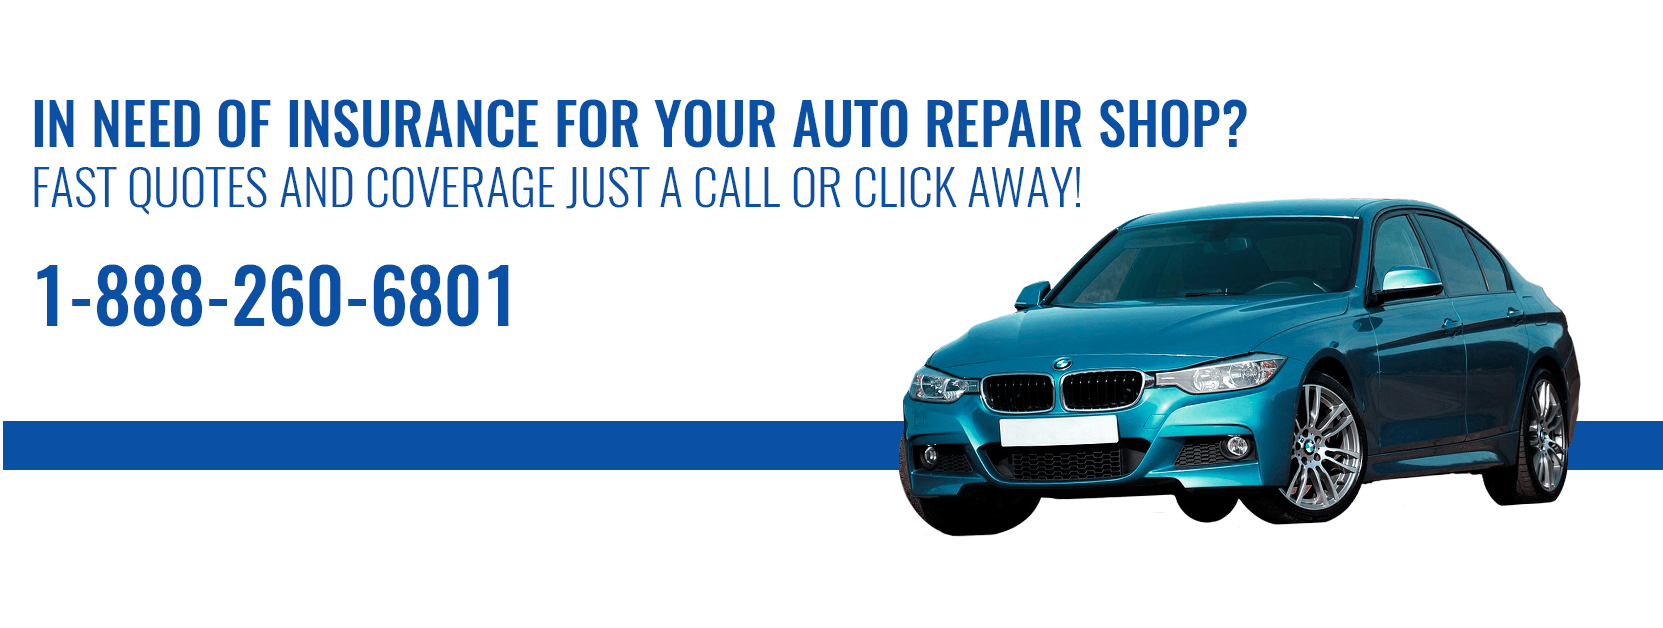 In Need of Insurance for your Auto Repair Shop?